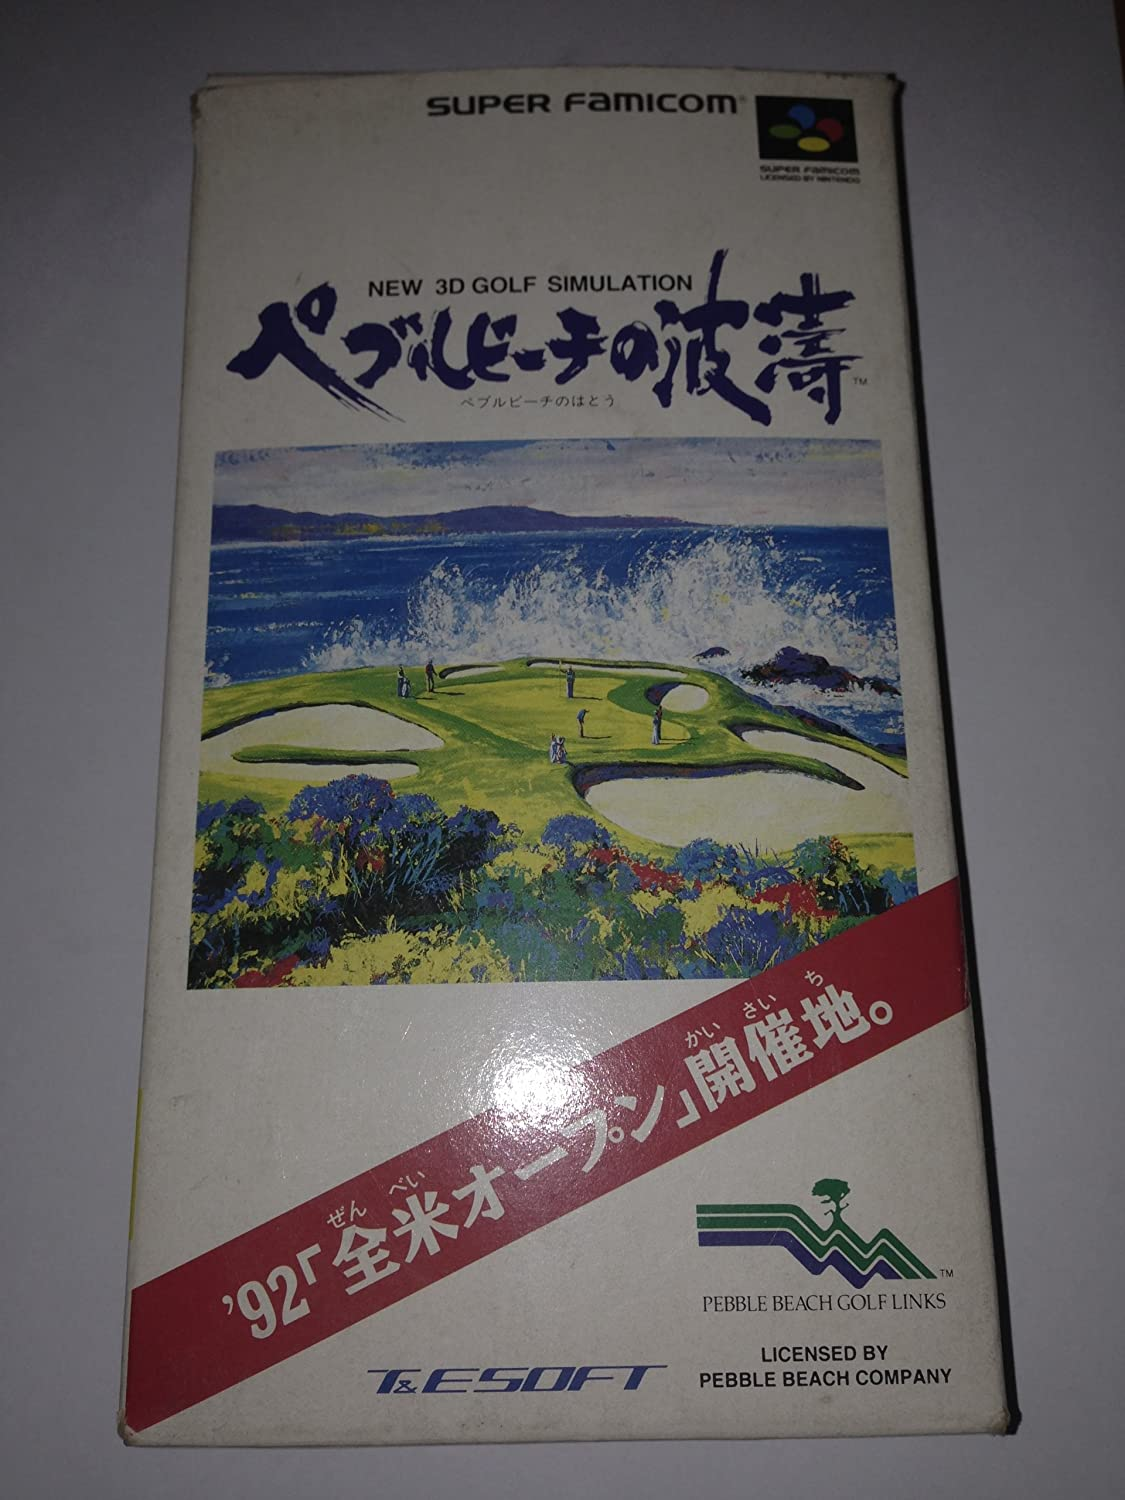 New 3D Golf Simulation: Waialae no Kiseki [Super Famicom] [Import